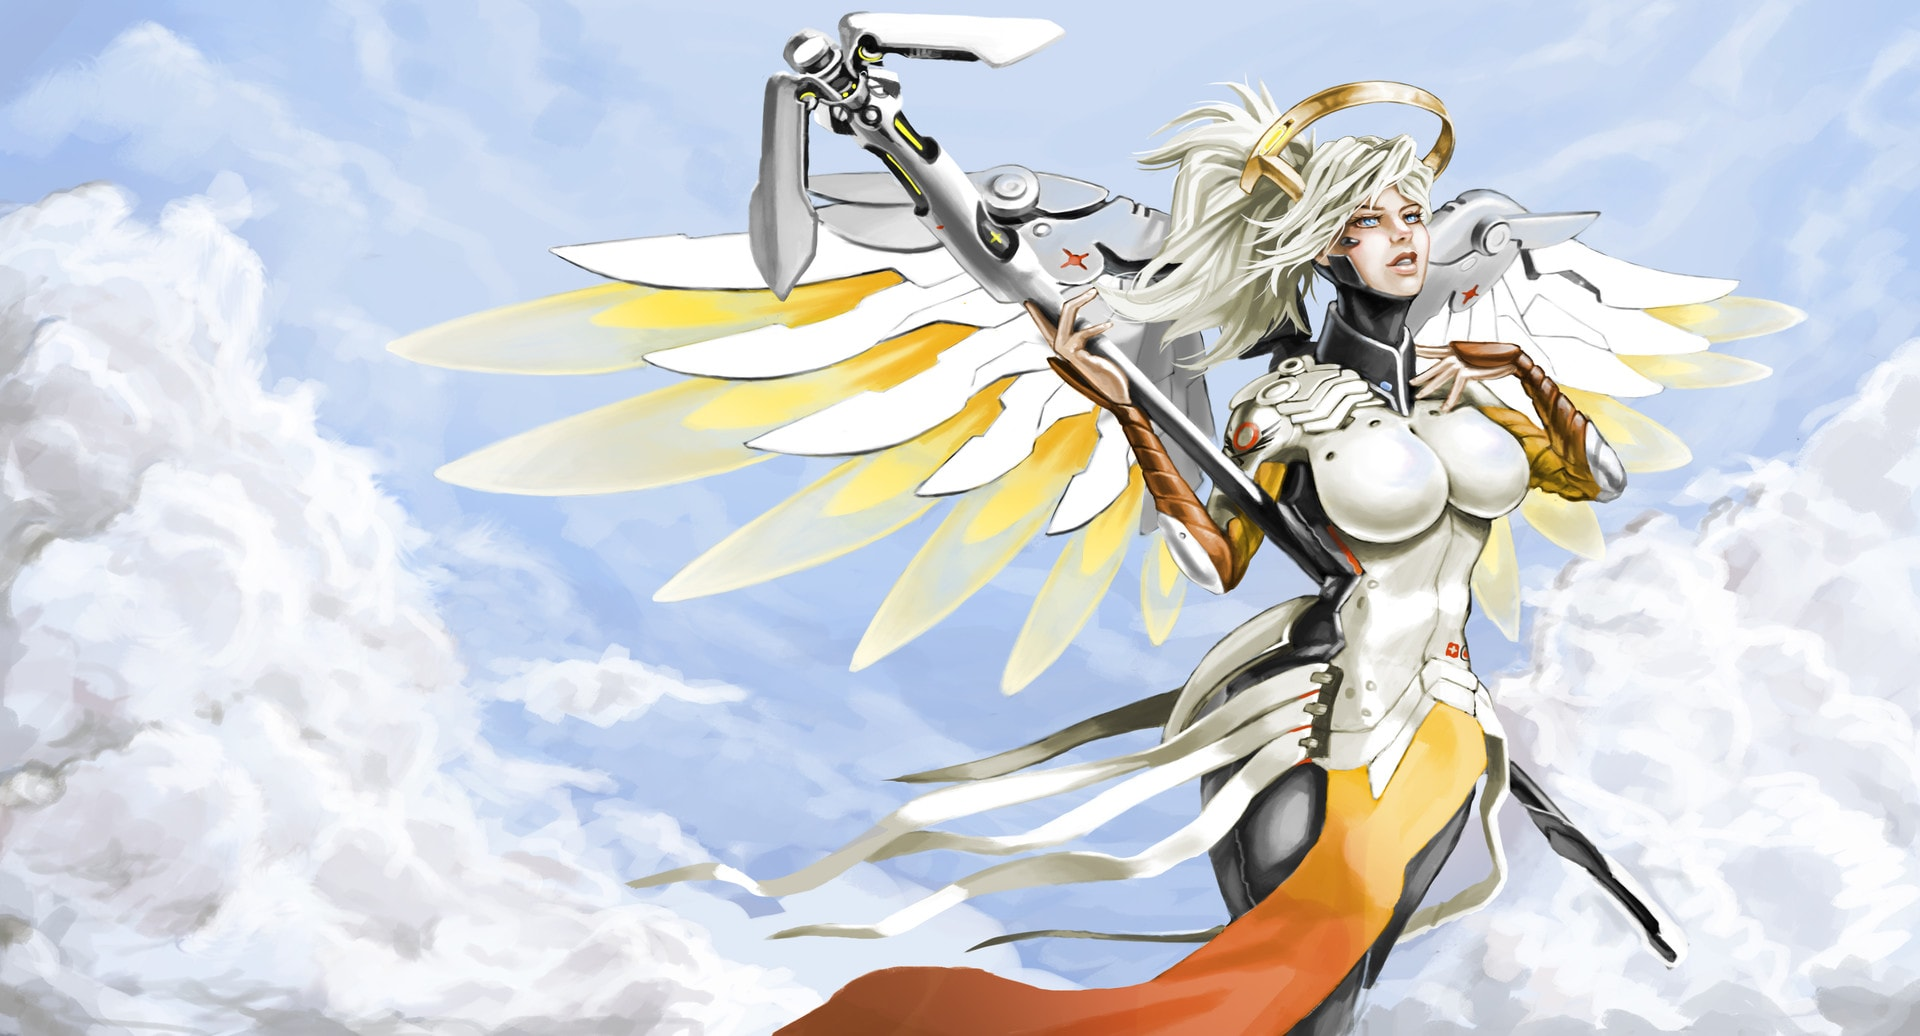 214 Mercy (Overwatch) HD Wallpapers | Backgrounds - Wallpaper Abyss